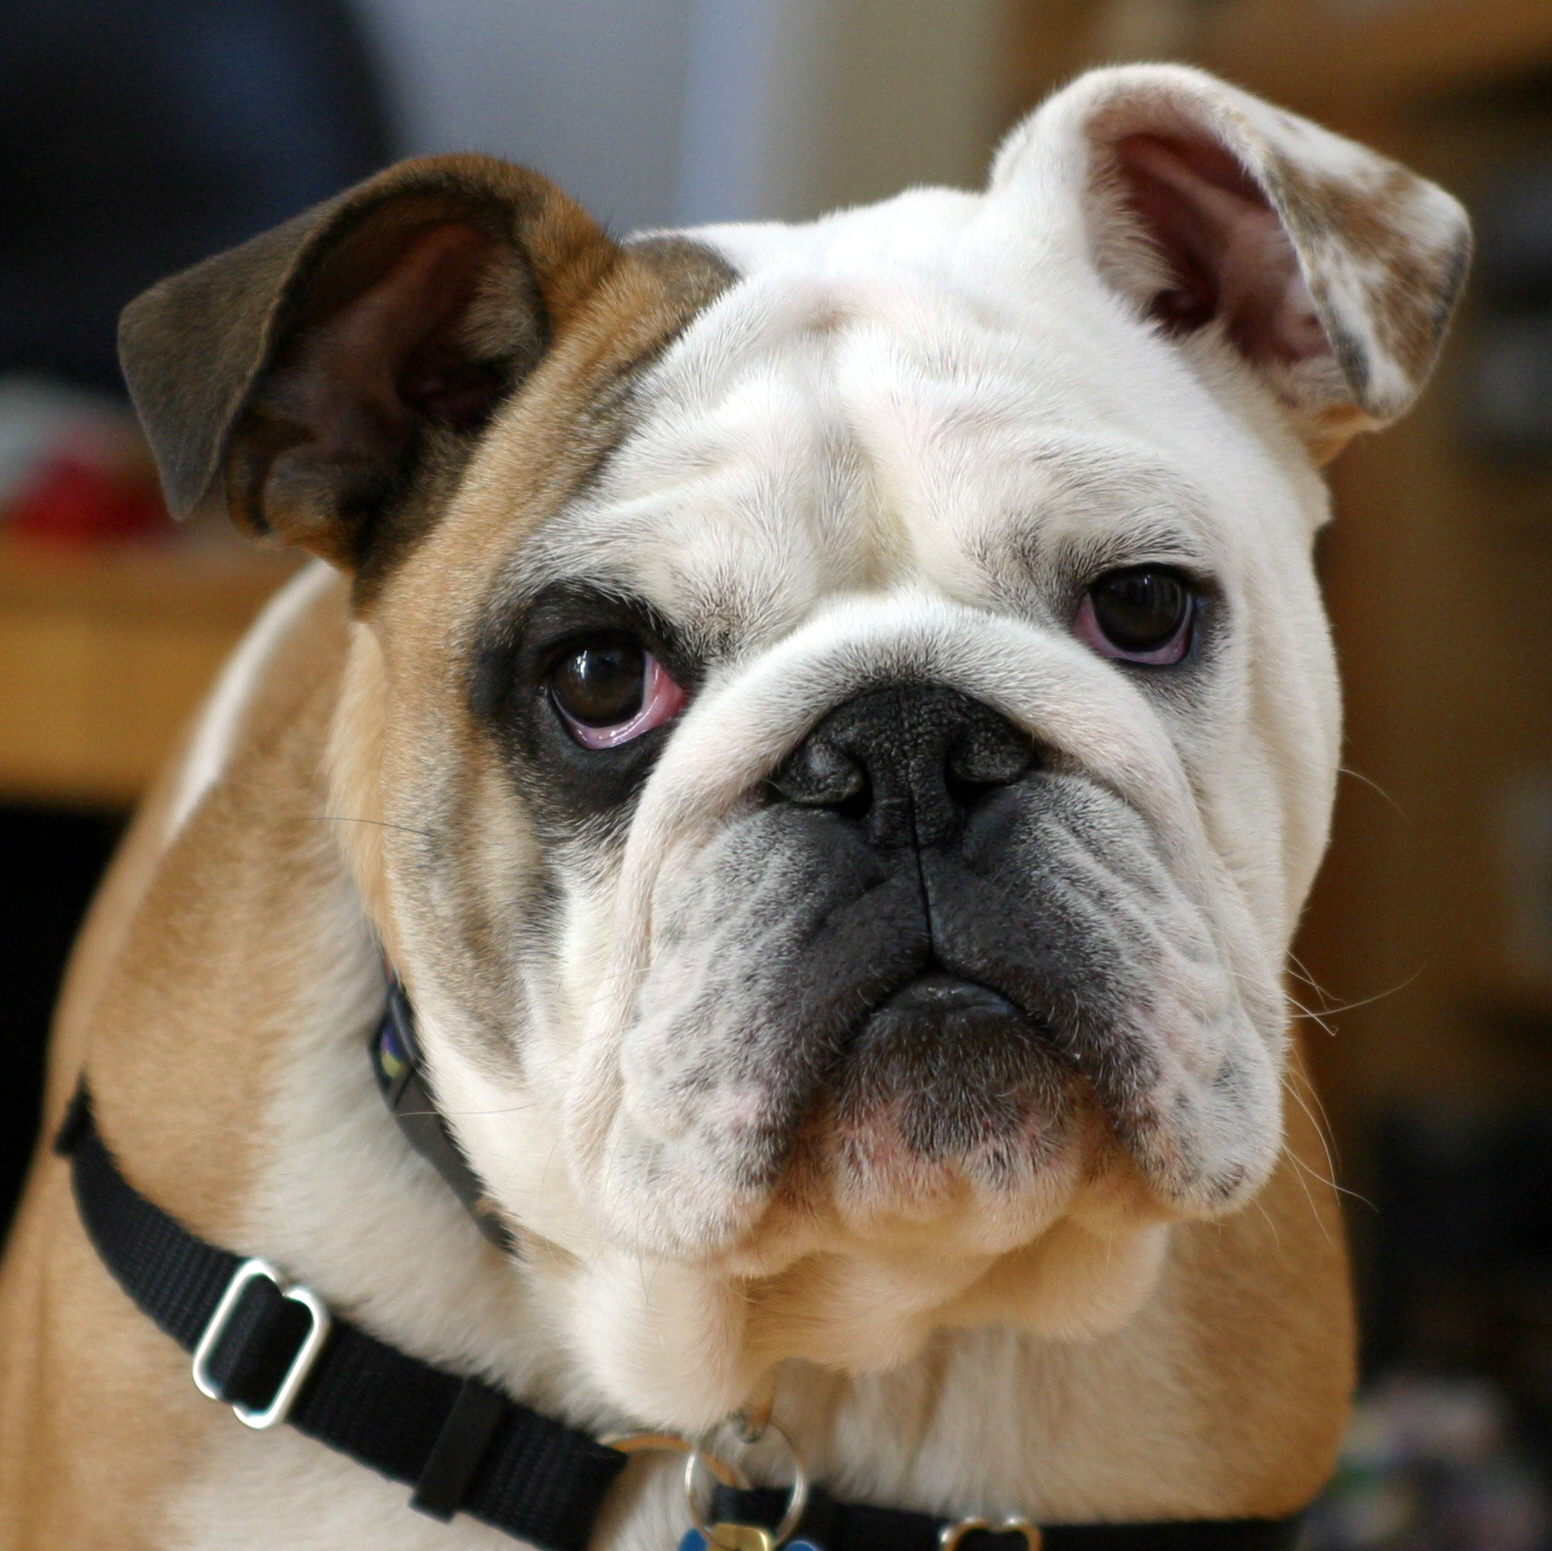 The general appearance of bulldogs